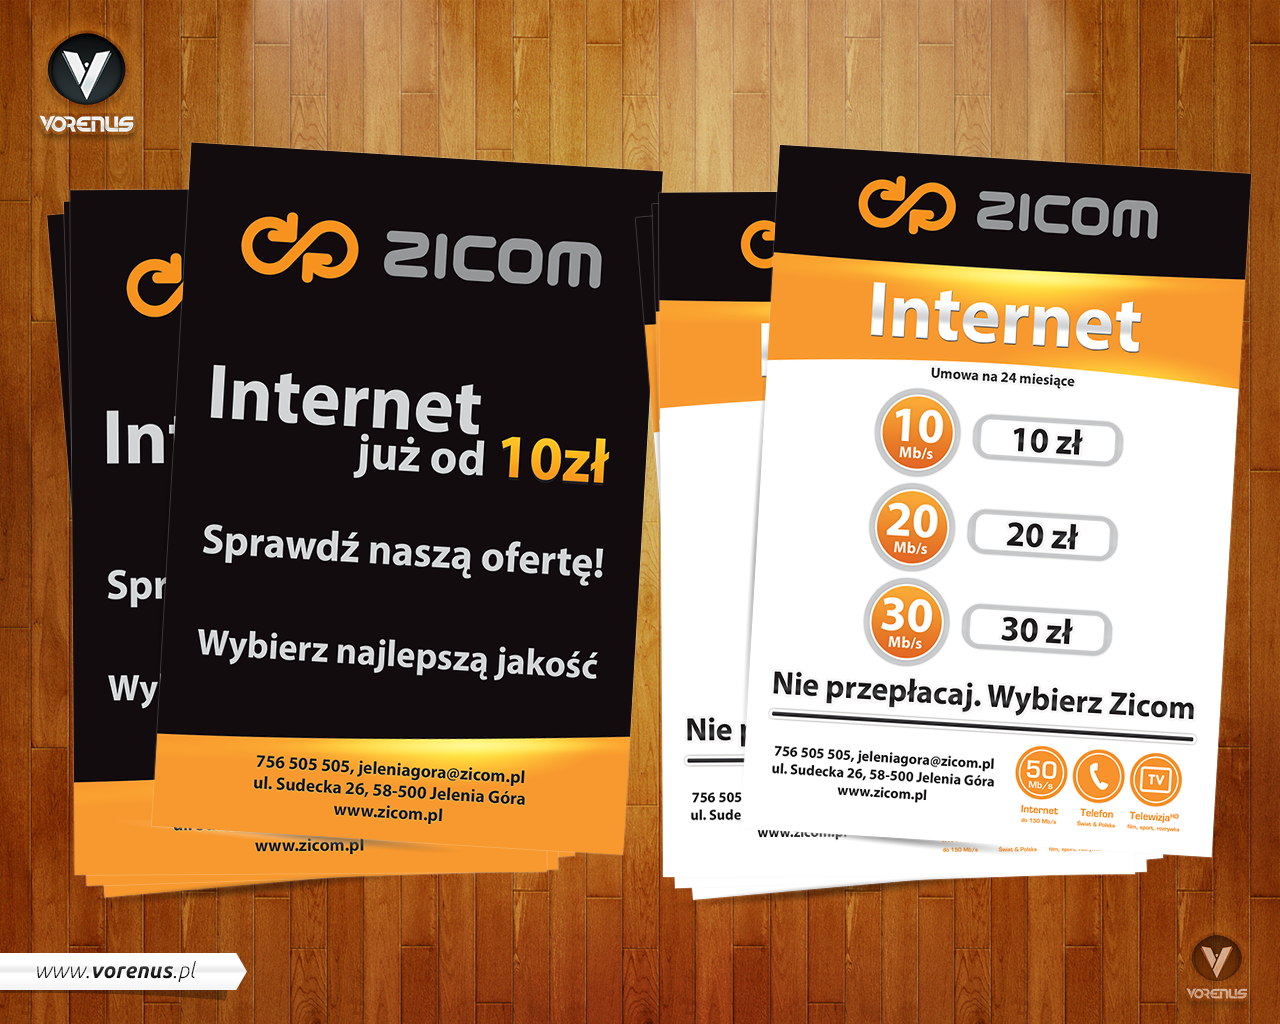 ZICOM - Flyer A6 - Internet. Presentation